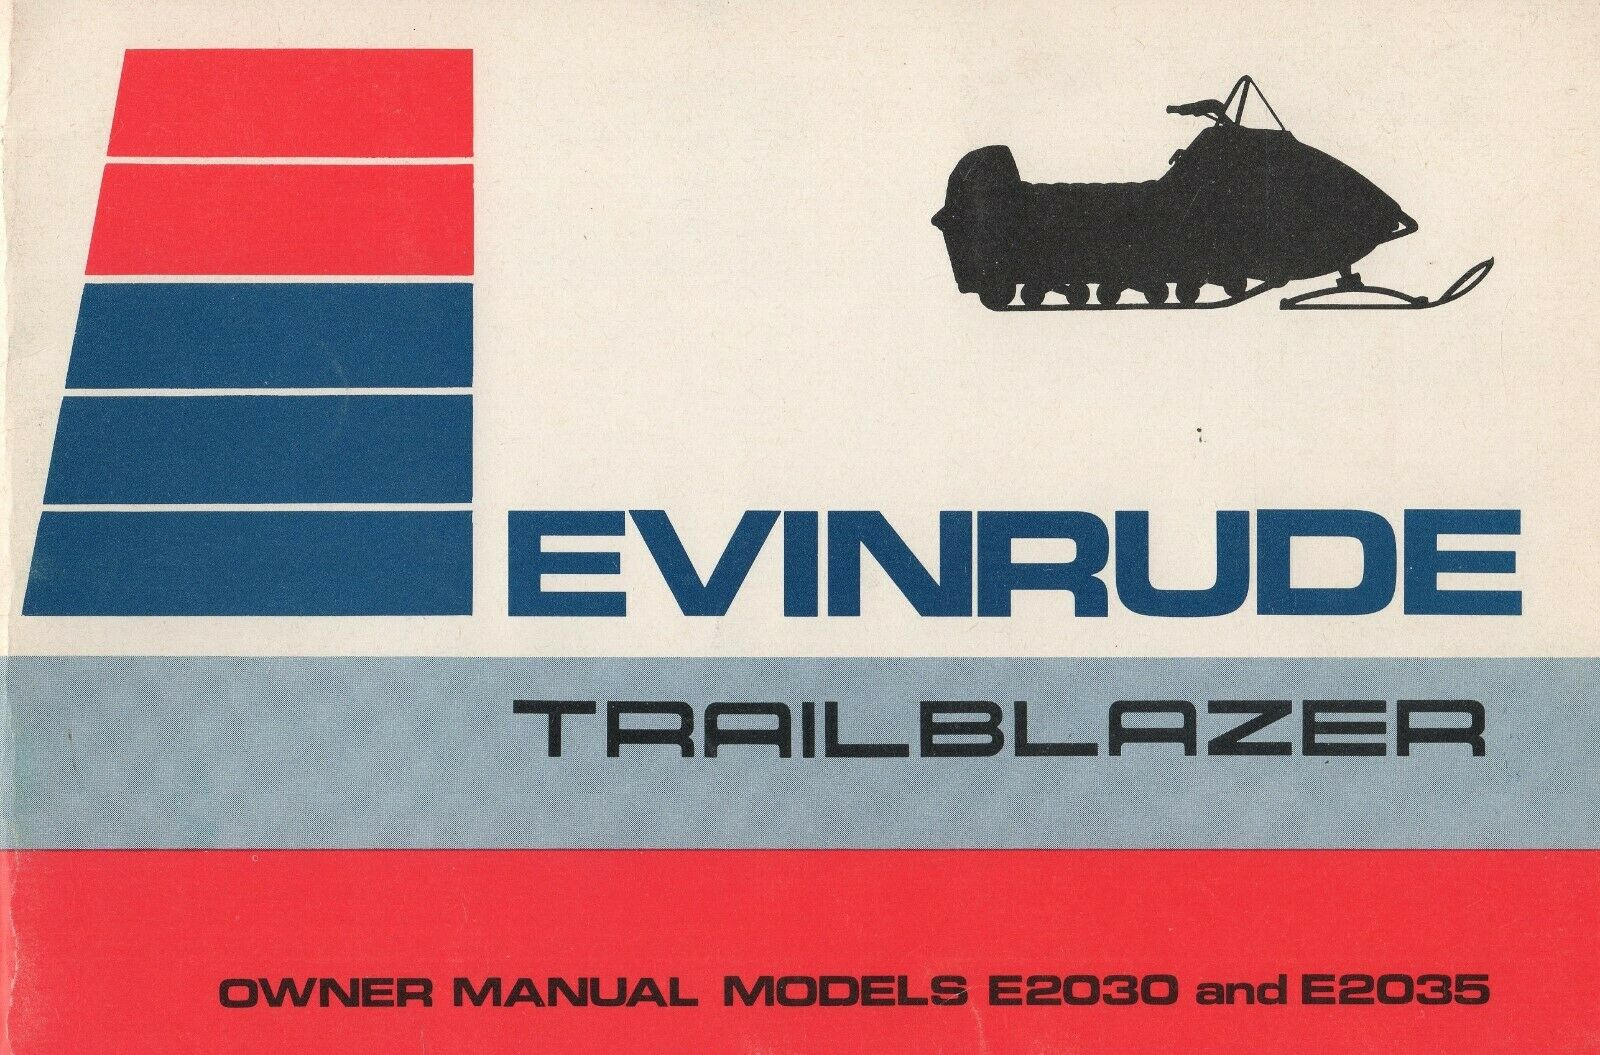 1973 EVINRUDE SNOWMOBILE TRAILBLAZER OWNERS  MANUAL P N 262373 (224)  store online